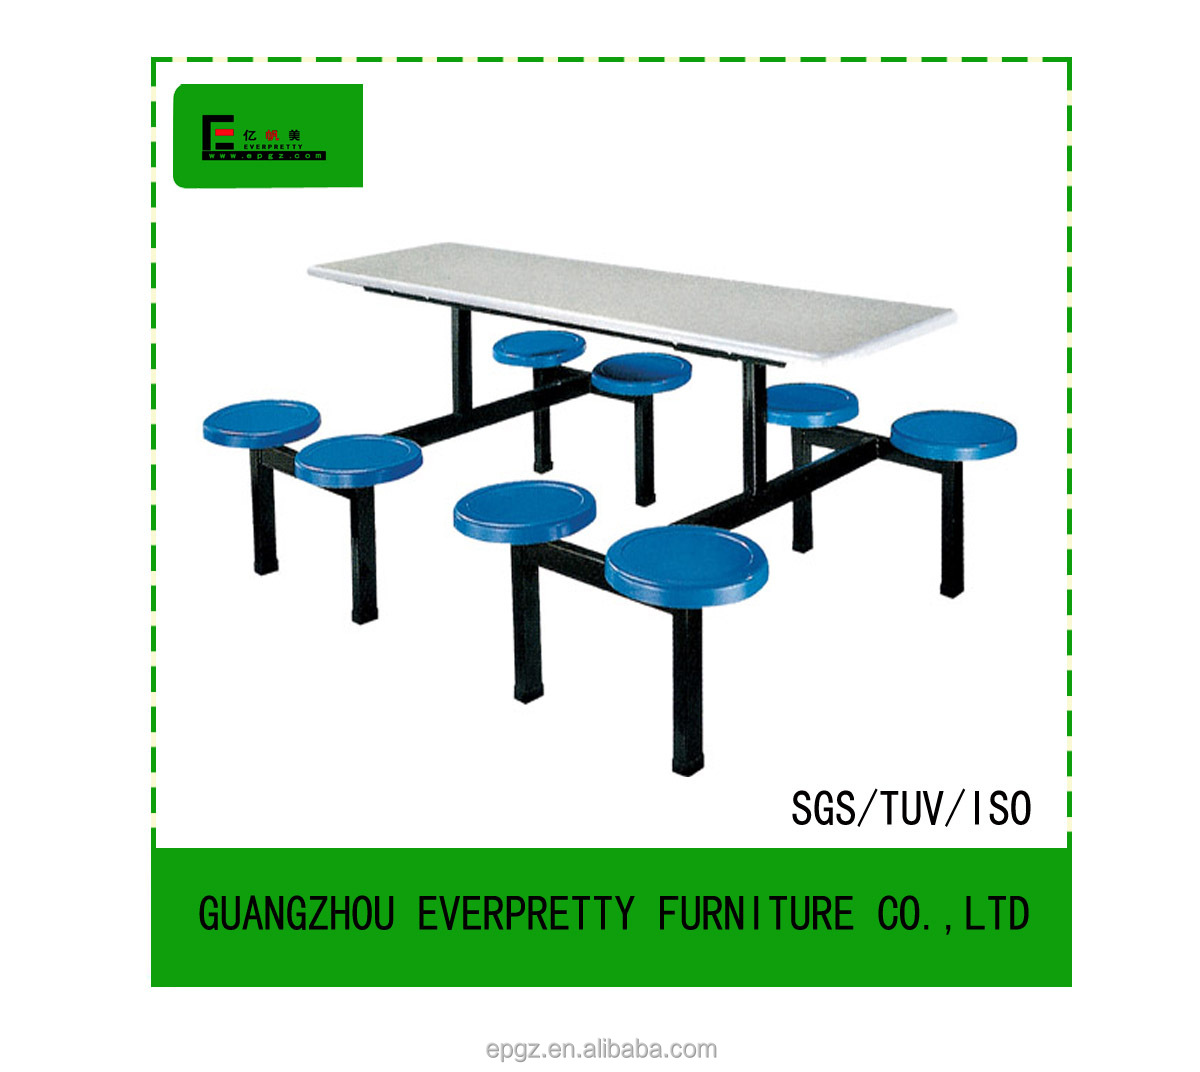 Round school table - Fiber Glass Canteen Table With 8 Round Chairs 8 Person Fiberglass Canteen Table Chairs For School Buy Fiber Glass Canteen Table Dinning Table Chair Chair